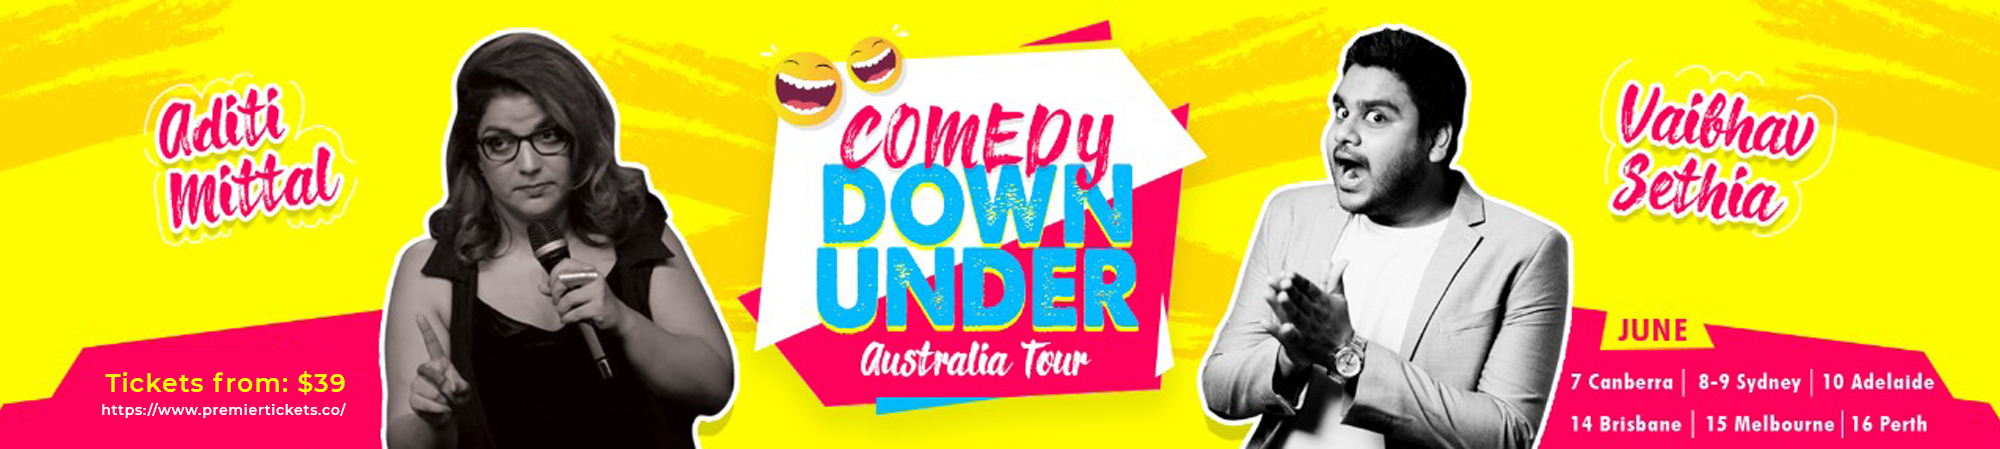 Comedy Down Under